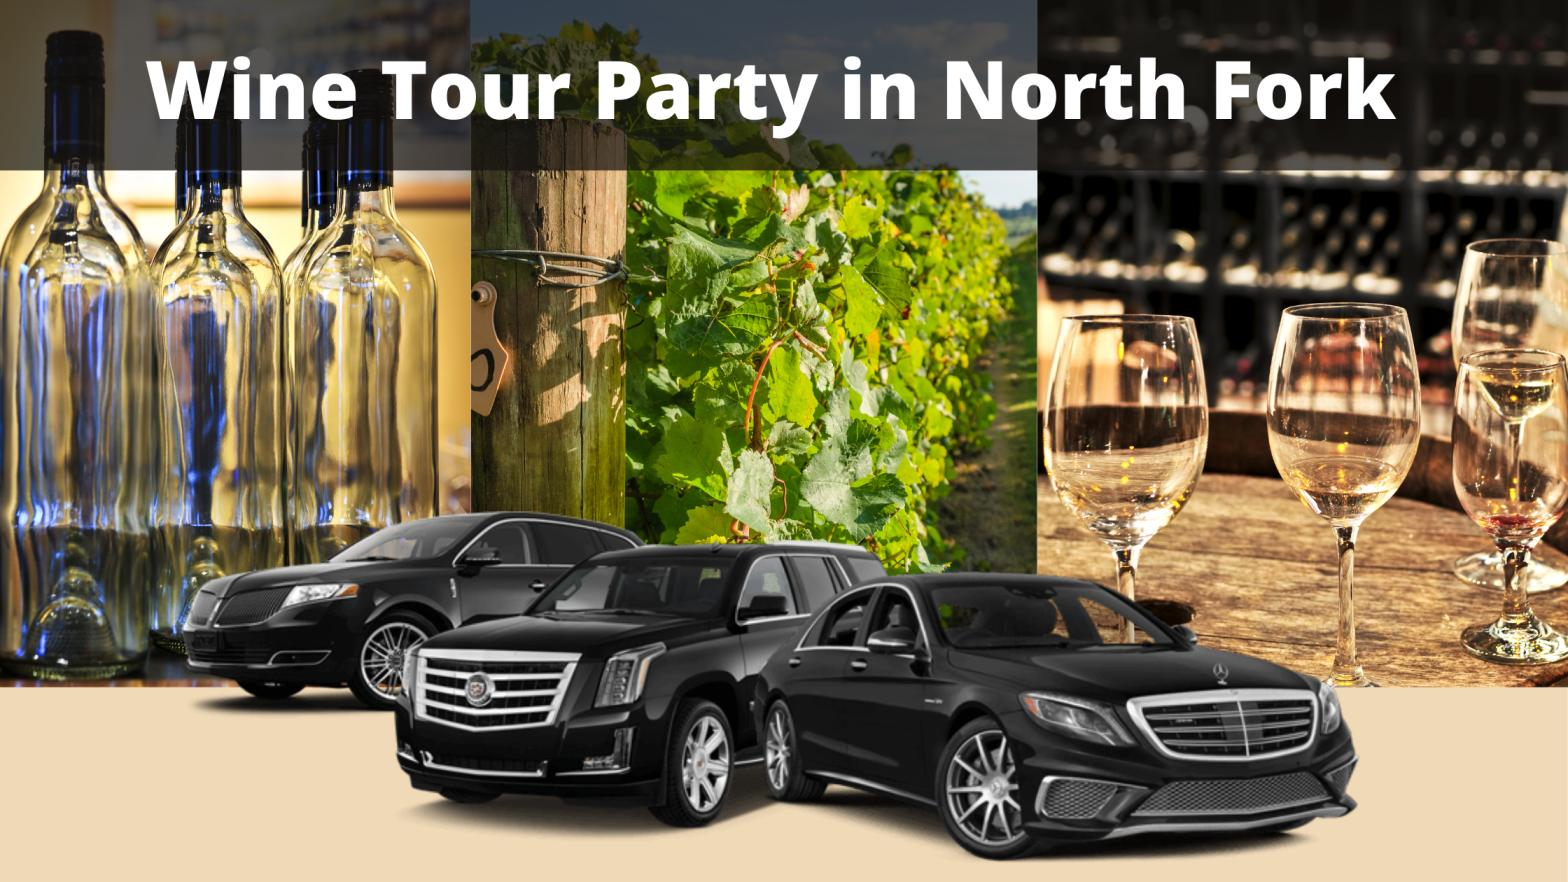 Wine Tour Party in North Fork